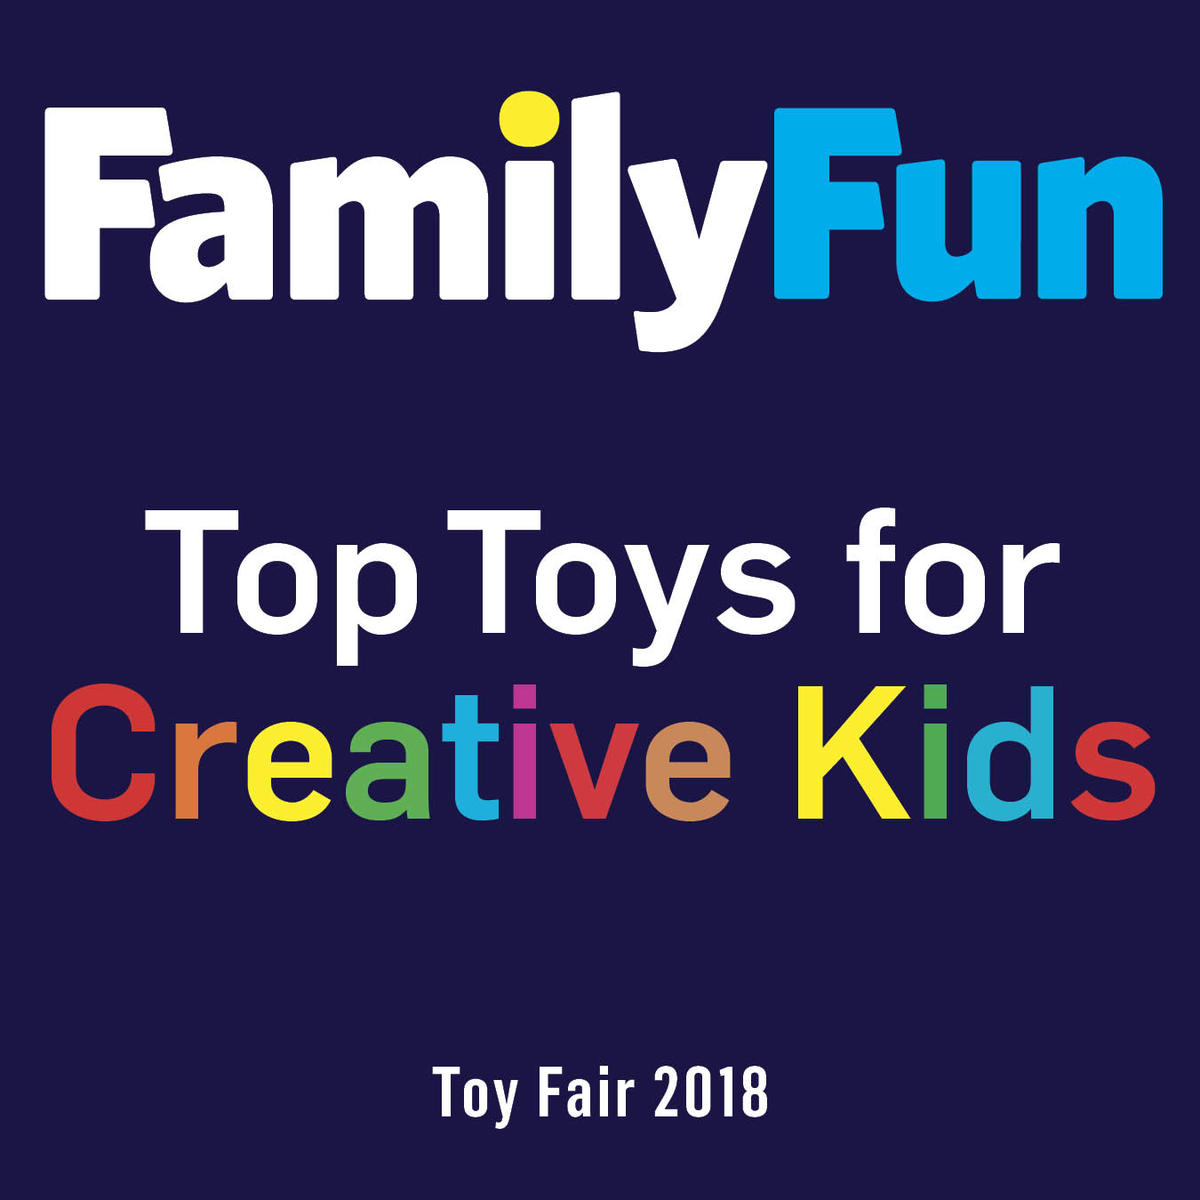 Family Fun Top Toys For Creative Kids Toy Fair 2018